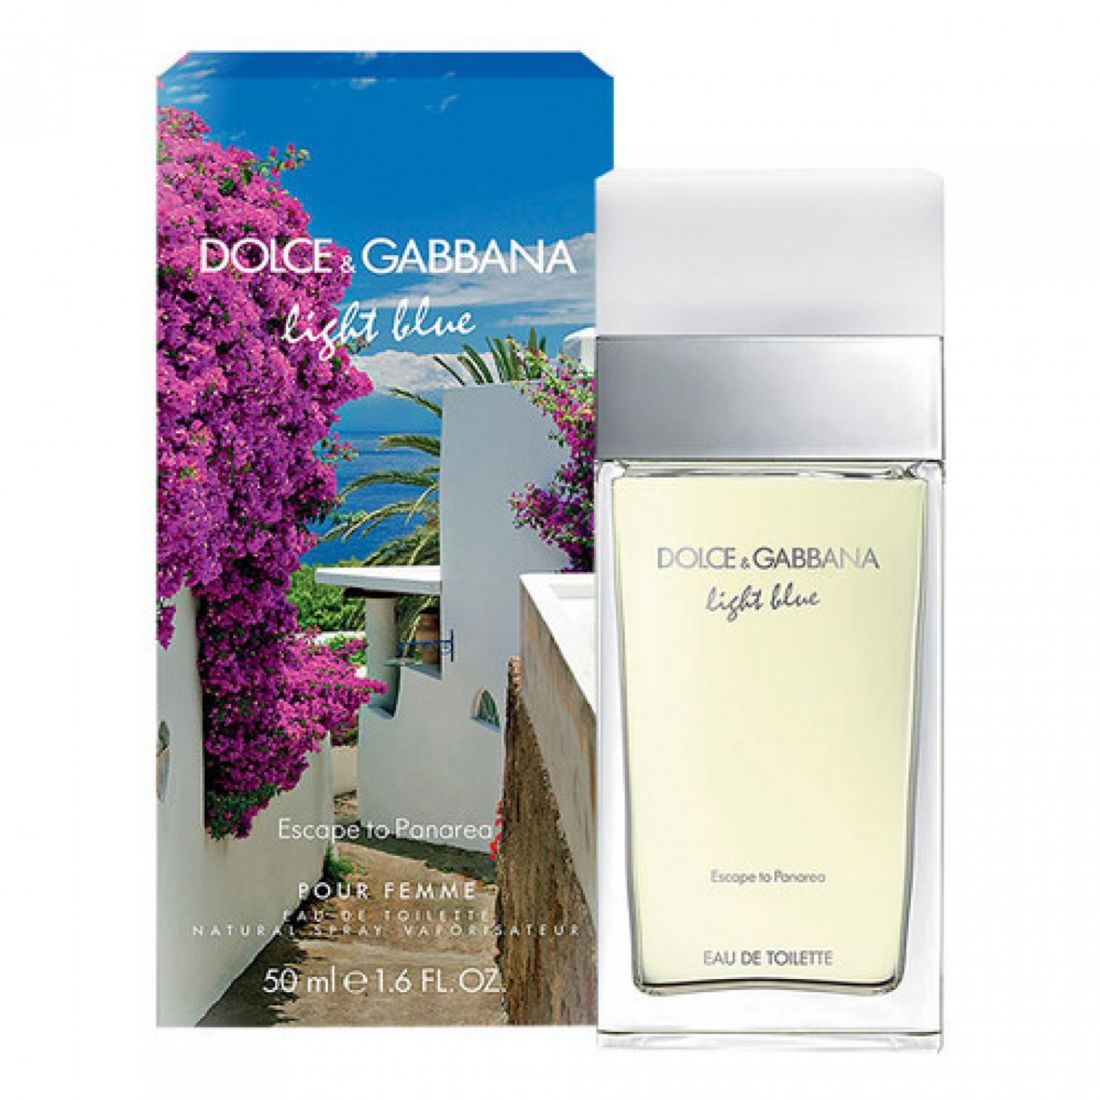 Dolce & Gabbana - Escape To Panera, 50 ml